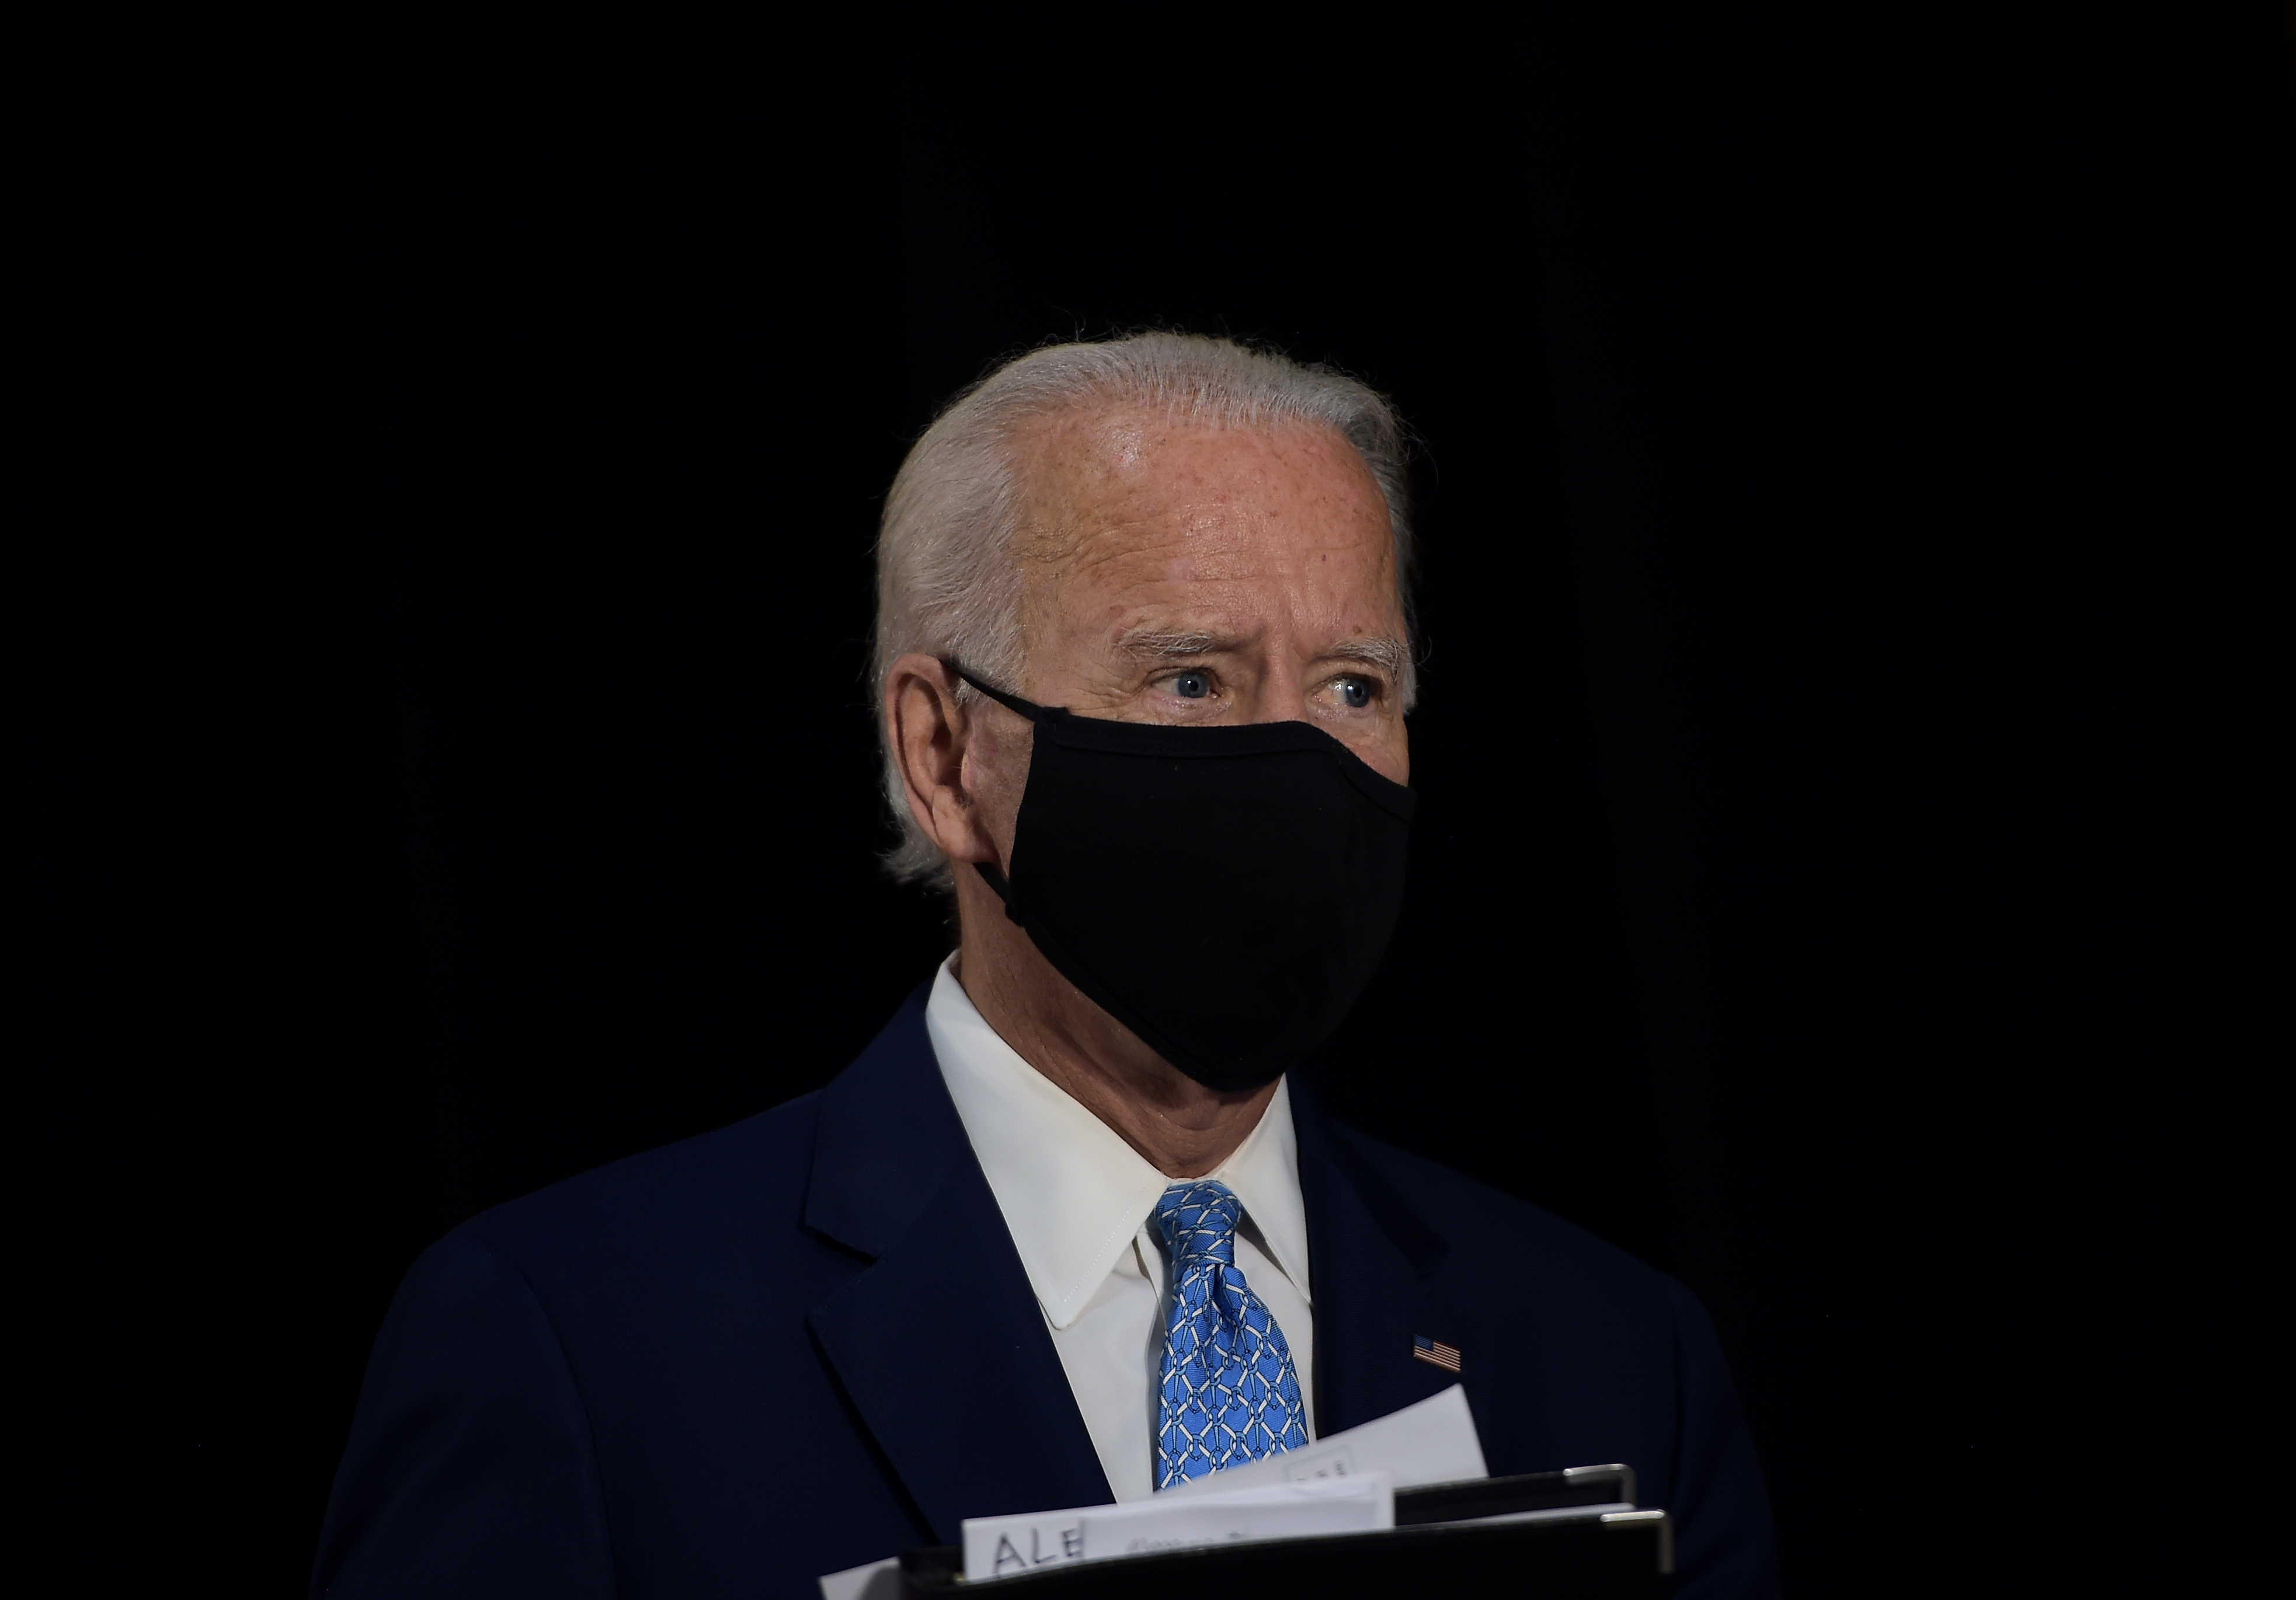 US Democratic presidential candidate Joe Biden leaves after speaking about the coronavirus pandemic and the economy on June 30, 2020, in Wilmington, Delaware. (Photo by Brendan Smialowski / AFP) (Photo by BRENDAN SMIALOWSKI/AFP via Getty Images)